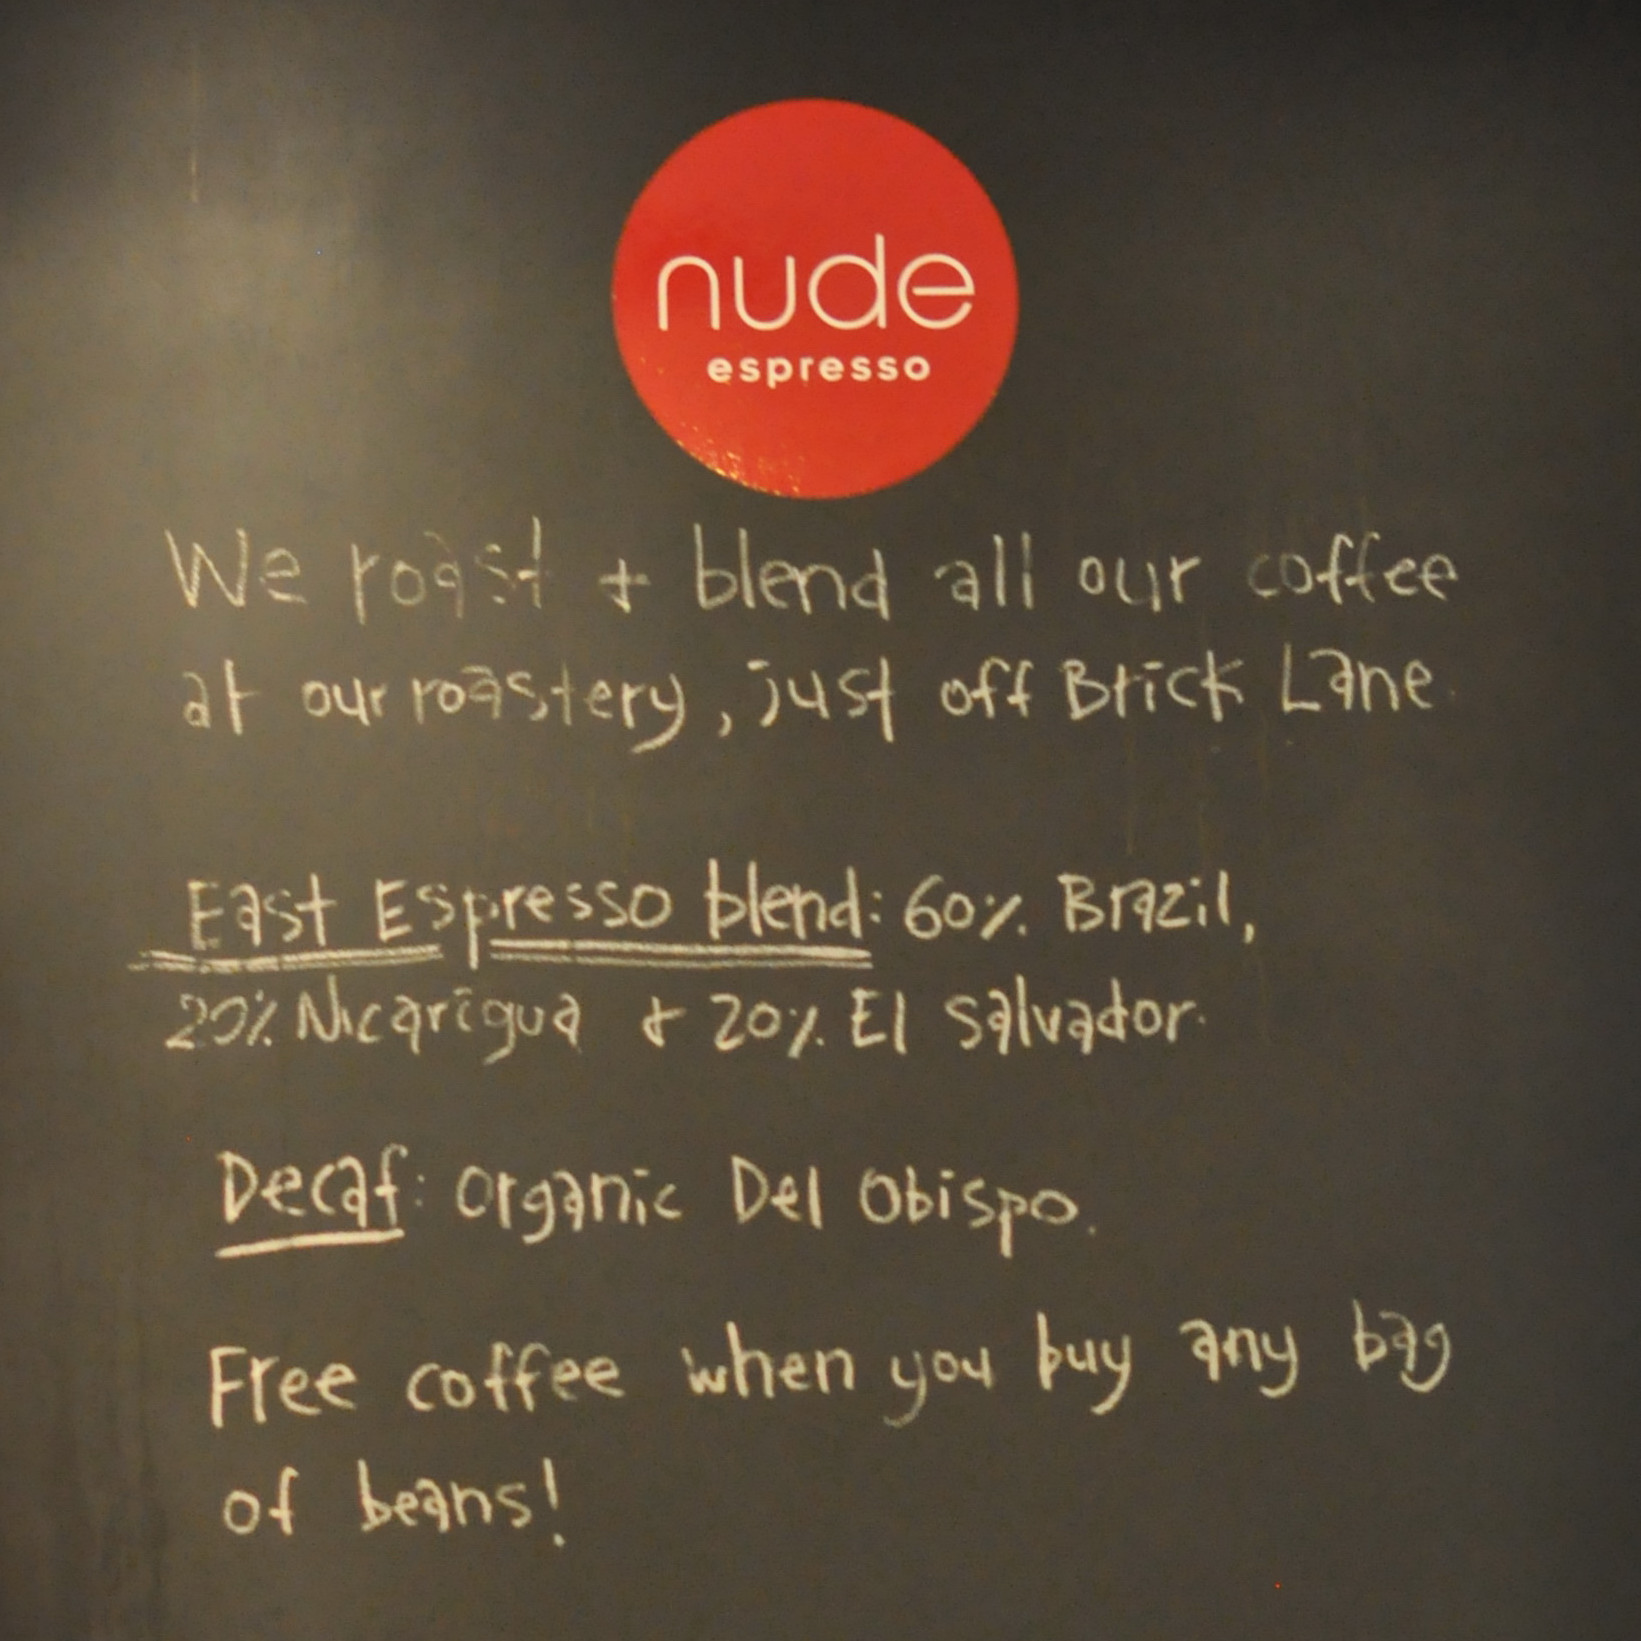 The Chalk Board at Nude Espresso's Soho Square Cafe: We roast & blend all our coffee at our roastery, just off Brick Lane. East Espresso Blend: 60% Brazil, 20% Nicaragua, 20% El Salvador. Decaf: Organic Del Obispo. Free Coffee when you buy any bag of beans!